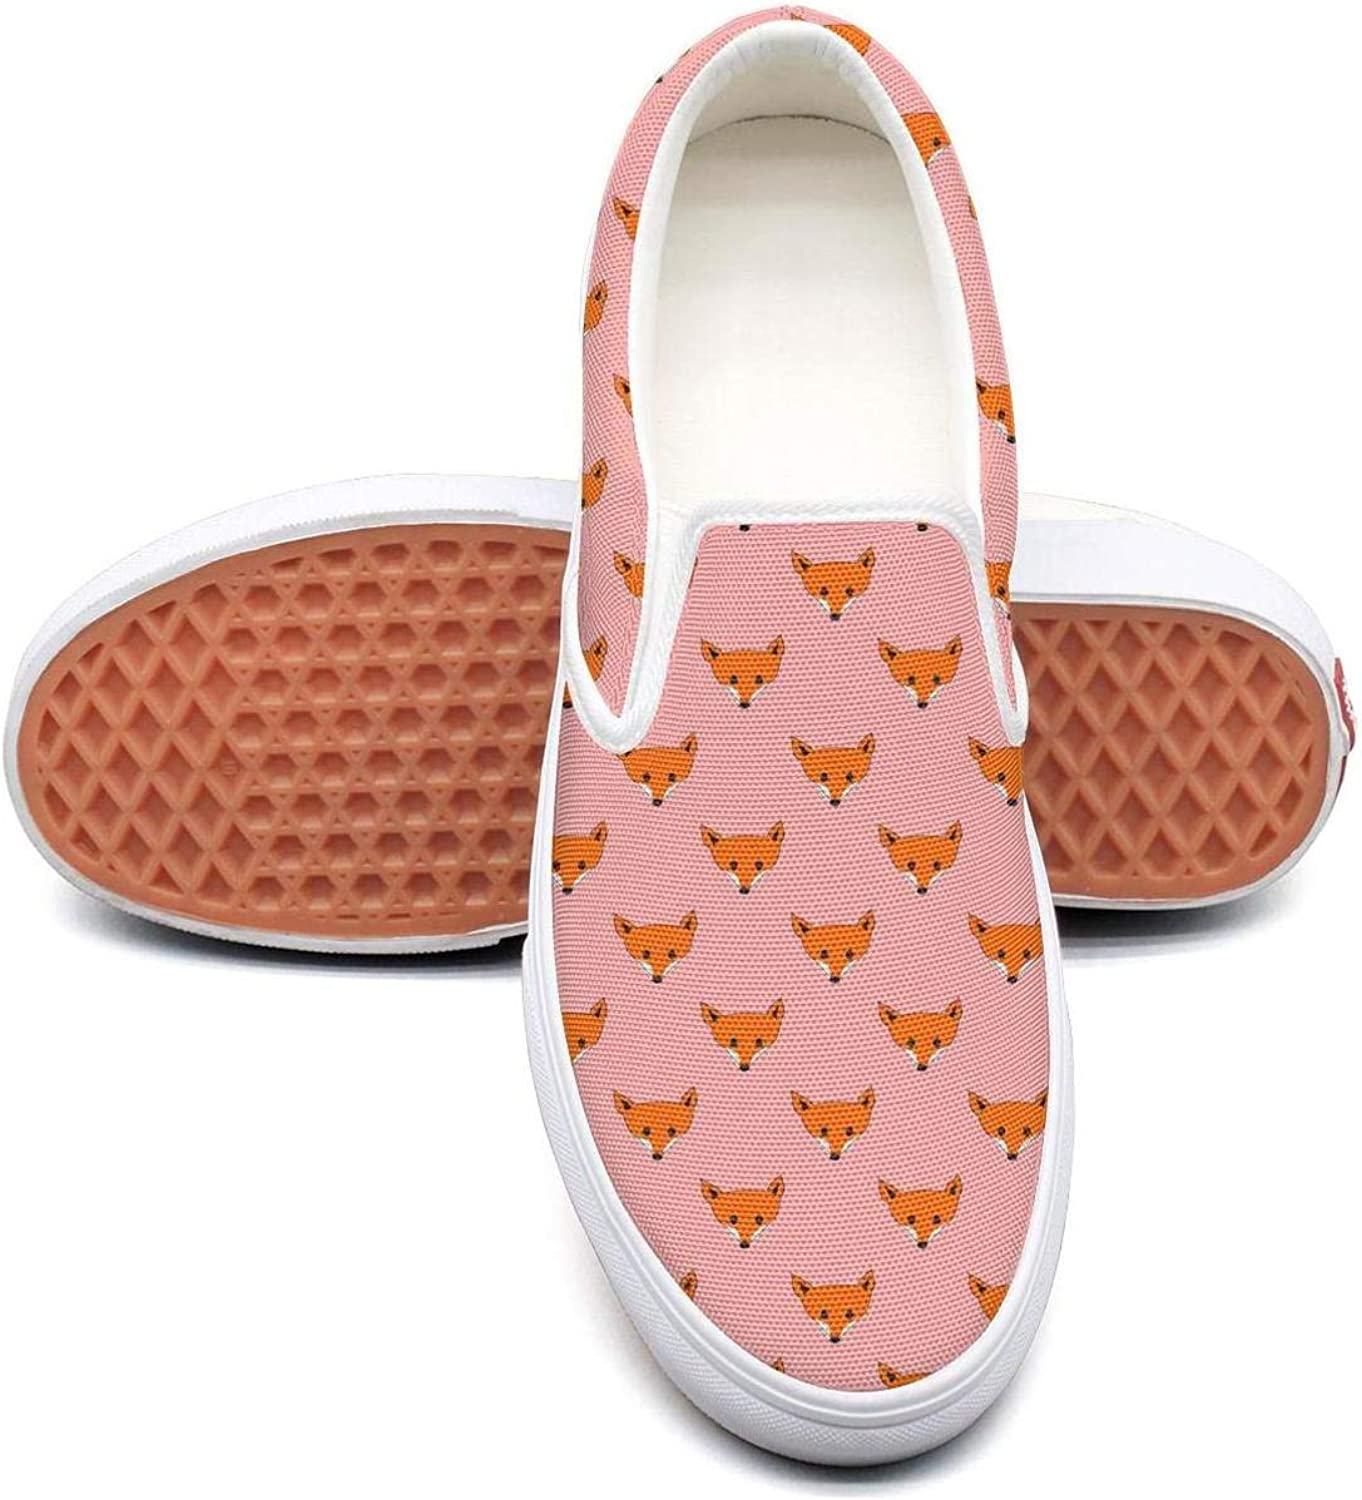 Feenfling Cute Fox Head Womens Printed Slip on Low Top Canvas Basketball shoes